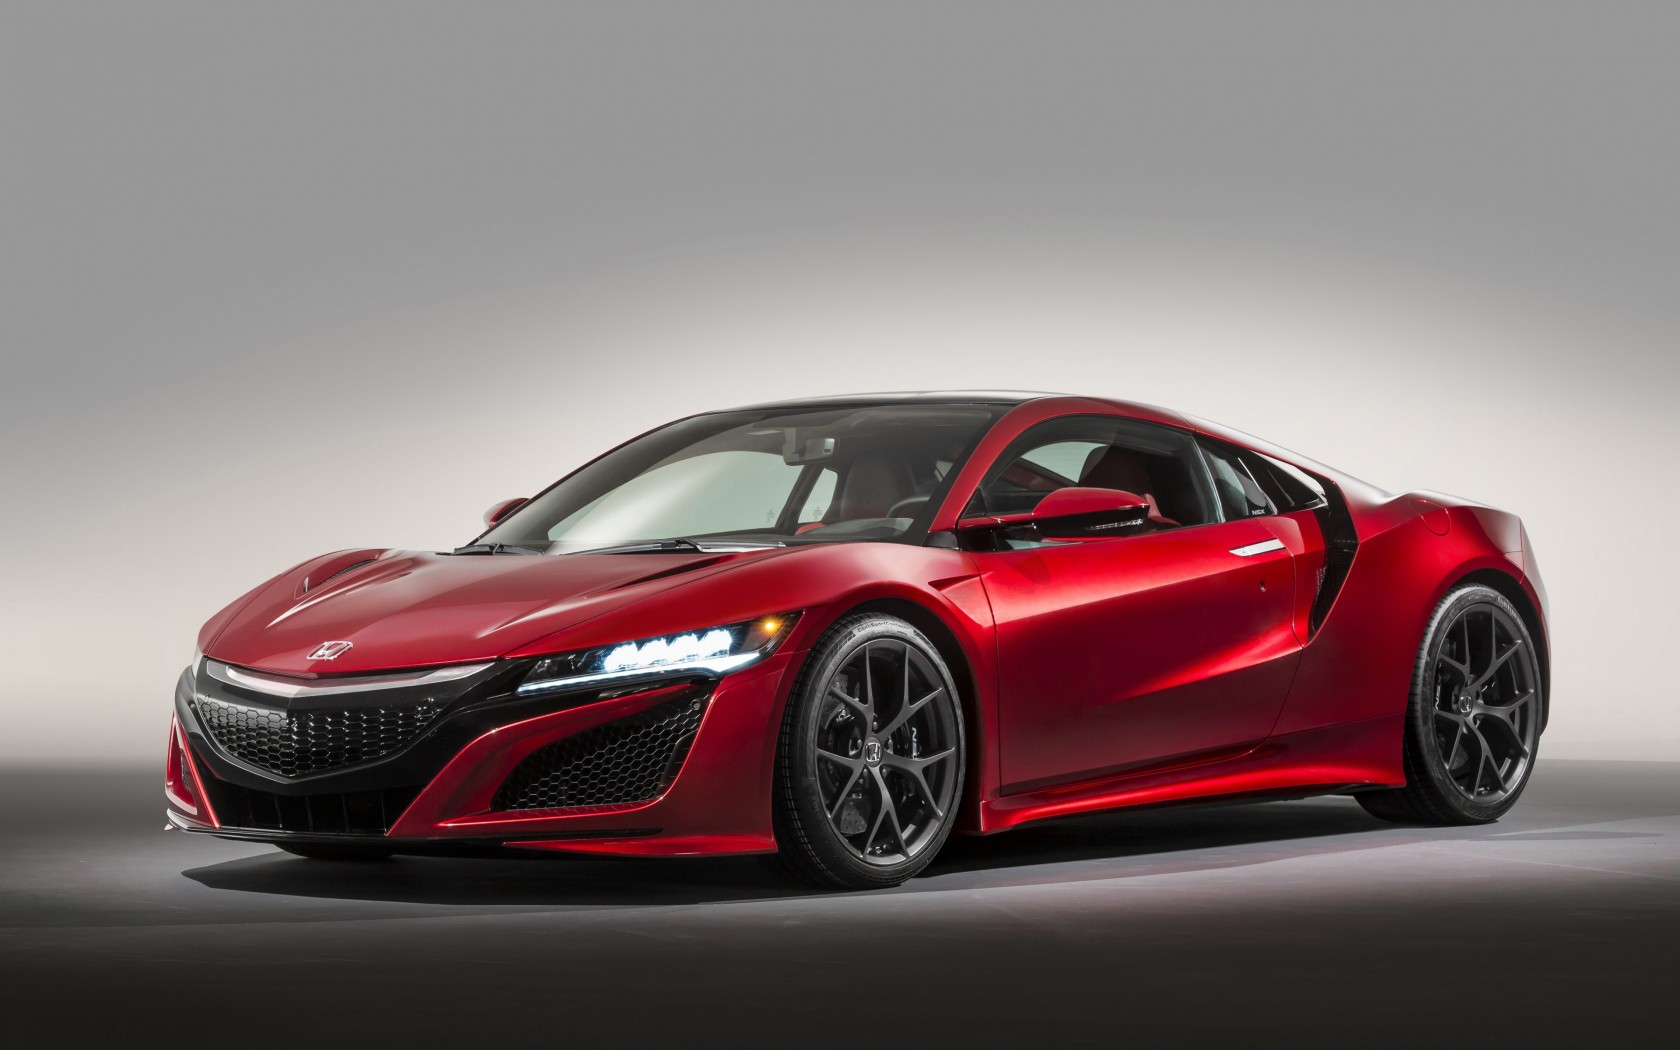 Honda NSX 2015 Wallpaper for Desktop 1680x1050